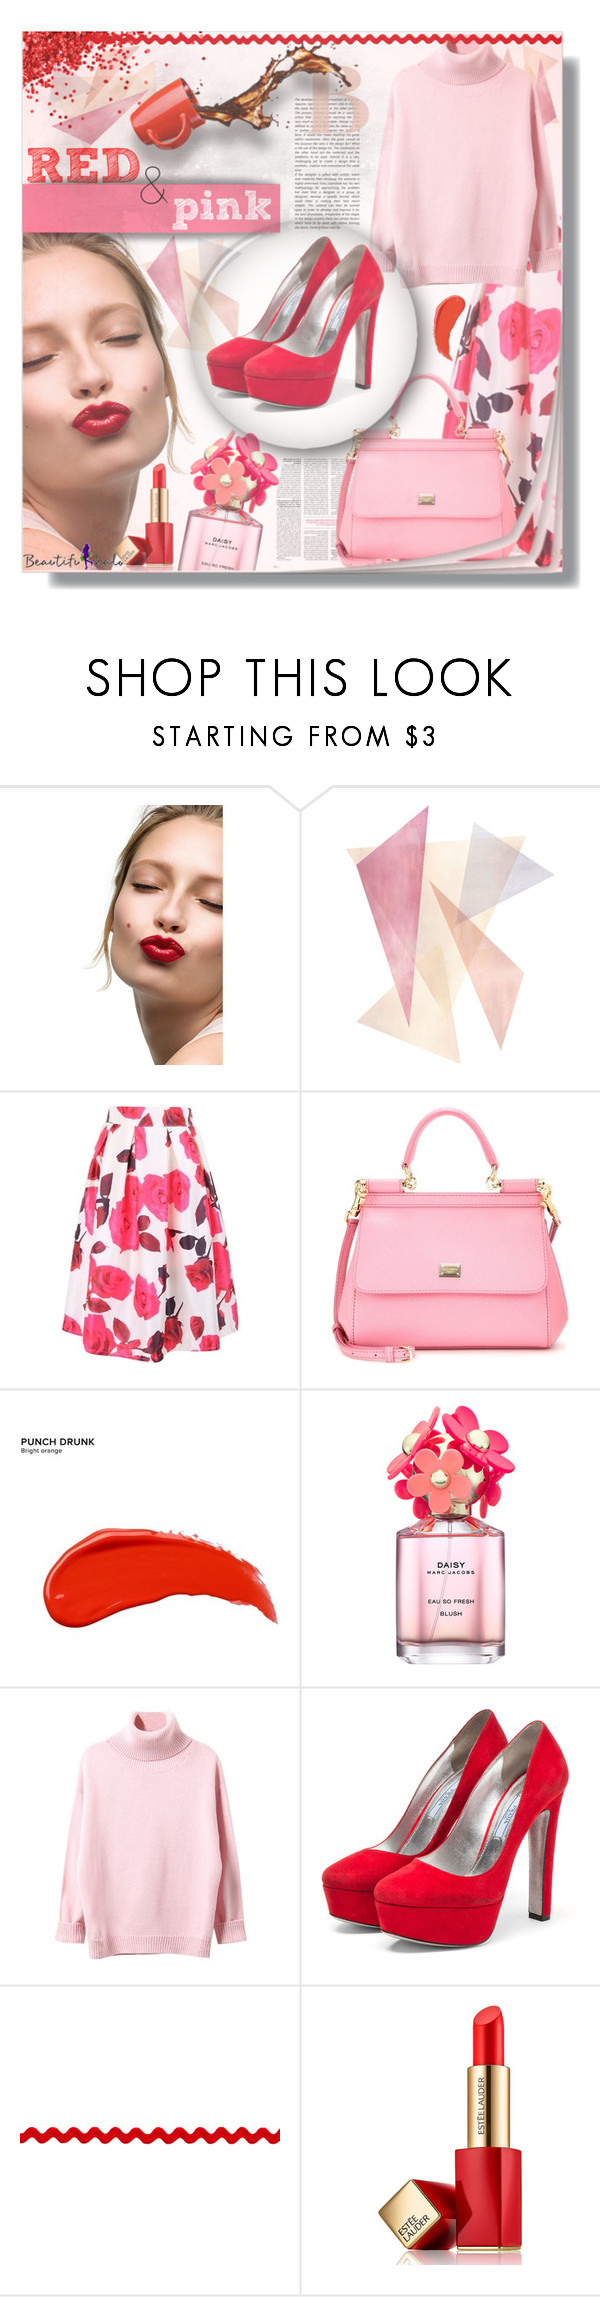 """""""Beautifulhalo.com"""" by mariamharrasova ❤ liked on Polyvore featuring Clarins, Dolce&Gabbana, Urban Decay, Marc Jacobs, Prada, Estée Lauder, women's clothing, women, female and woman"""